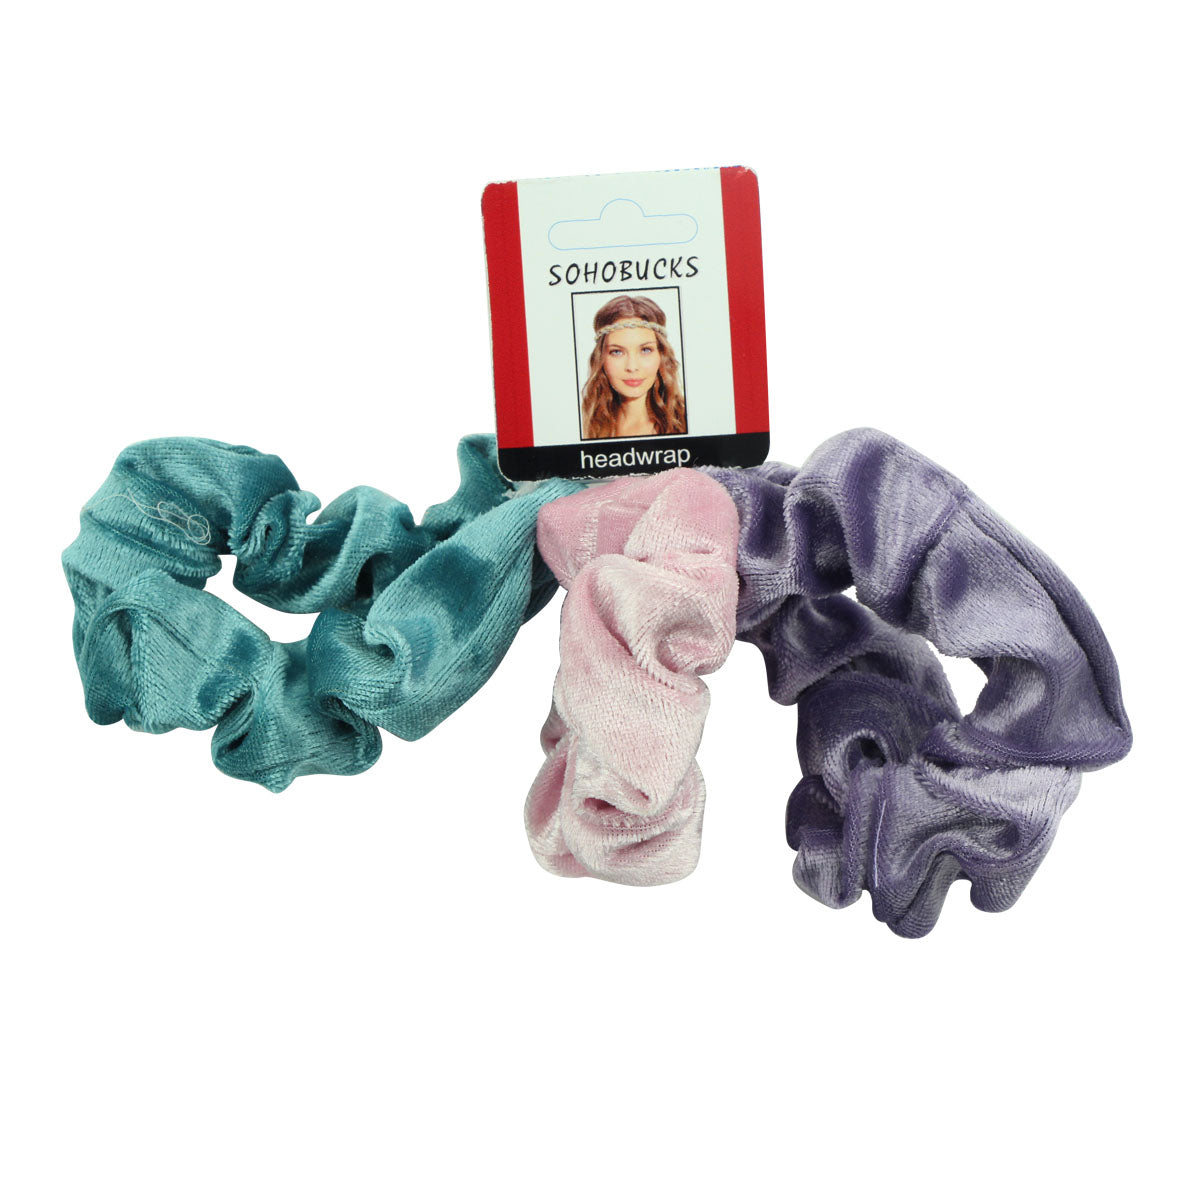 velvet hair scrunchies 3pack, scrunchies hair tie, plush scrunchies5560 - SOHOBUCKS CO.,LIMITED